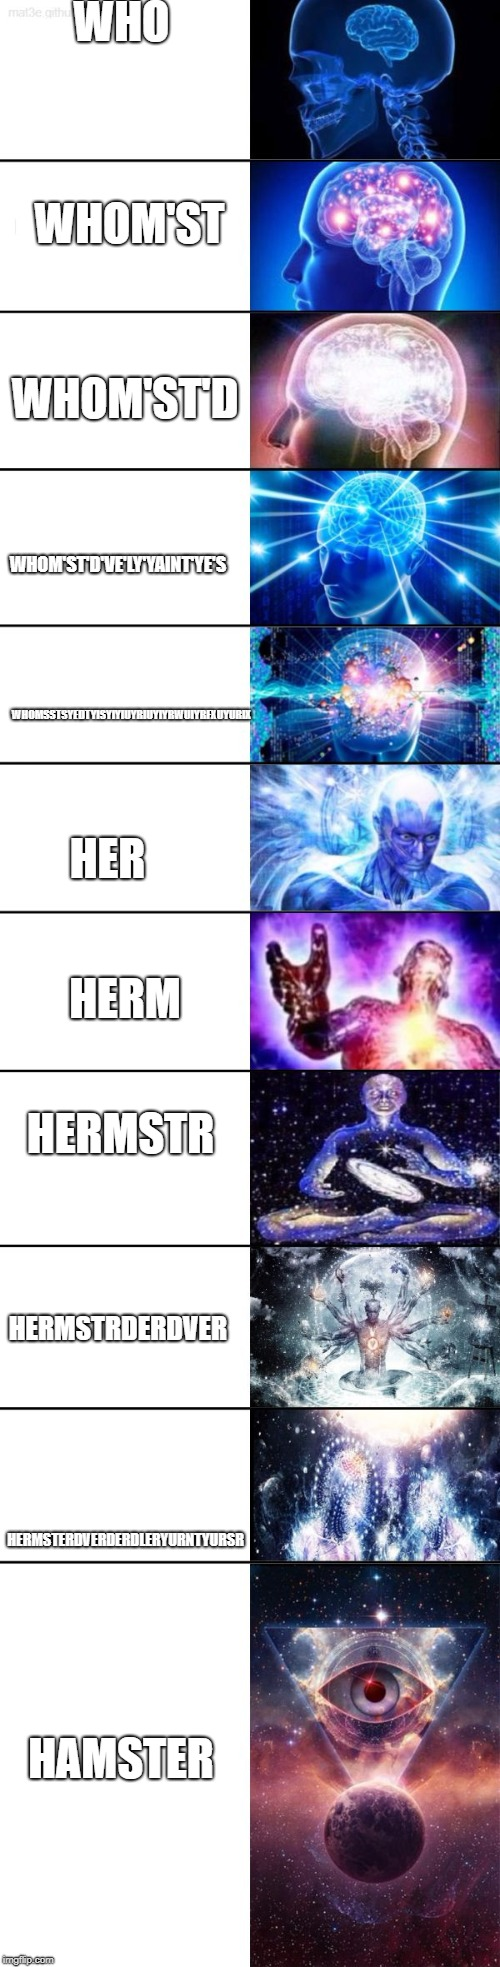 Extended Expanding Brain | WHO HERMSTERDVERDERDLERYURNTYURSR WHOM'ST WHOM'ST'D WHOM'ST'D'VE'LY'YAINT'YE'S WHOMSSTSYEDTYISYIYIUYRIUYIYRWUIYRFXUYURIX HER HERM HERMSTR HE | image tagged in extended expanding brain | made w/ Imgflip meme maker